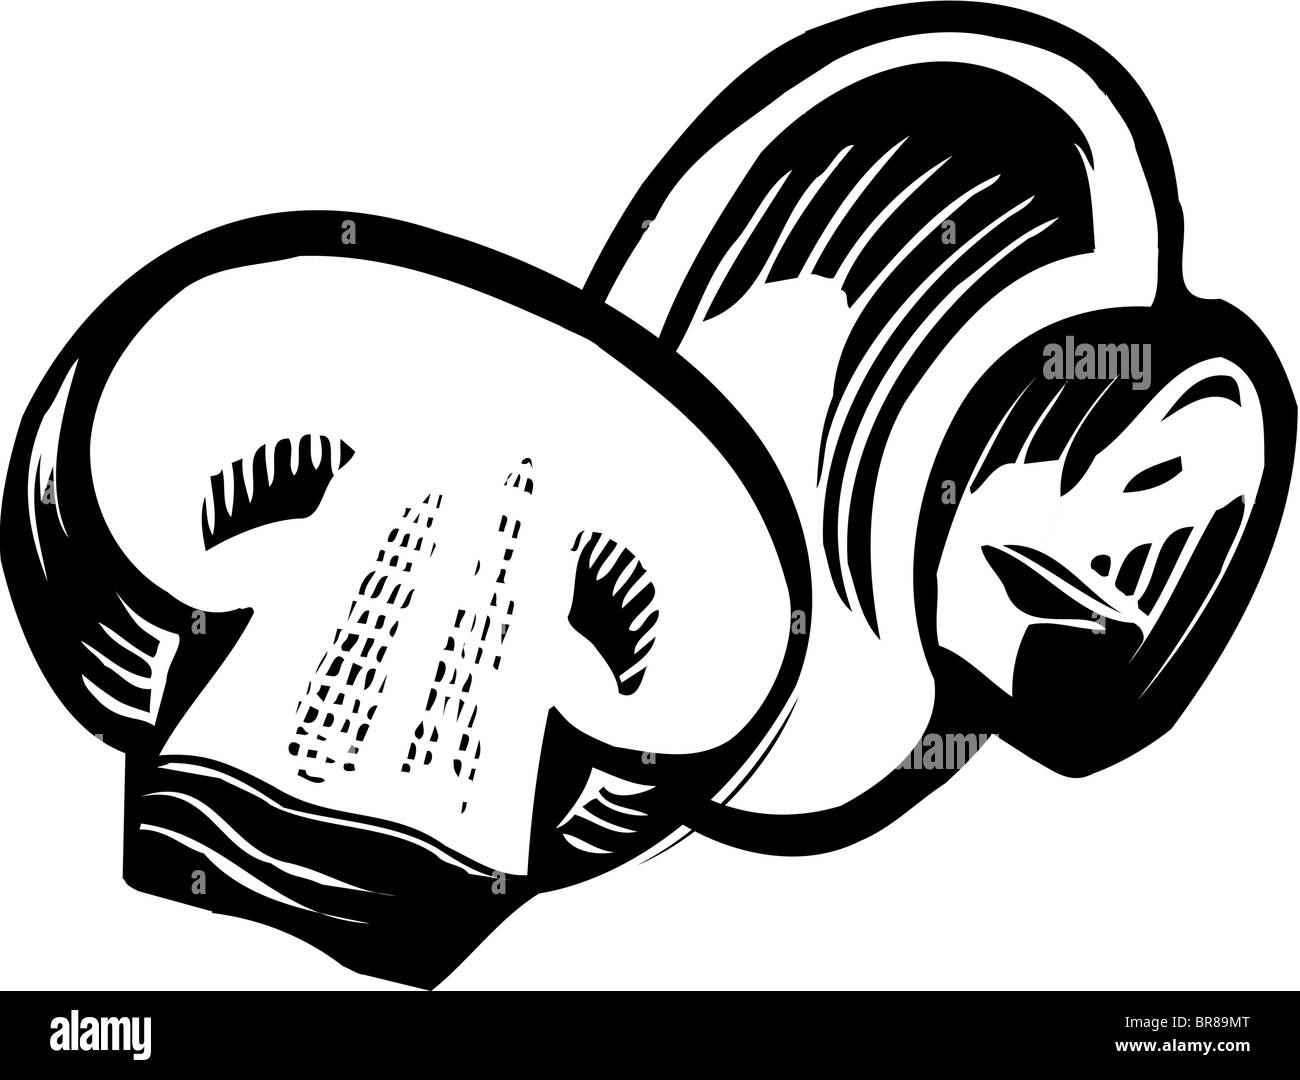 A drawing of button mushrooms in black and white Stock Photo